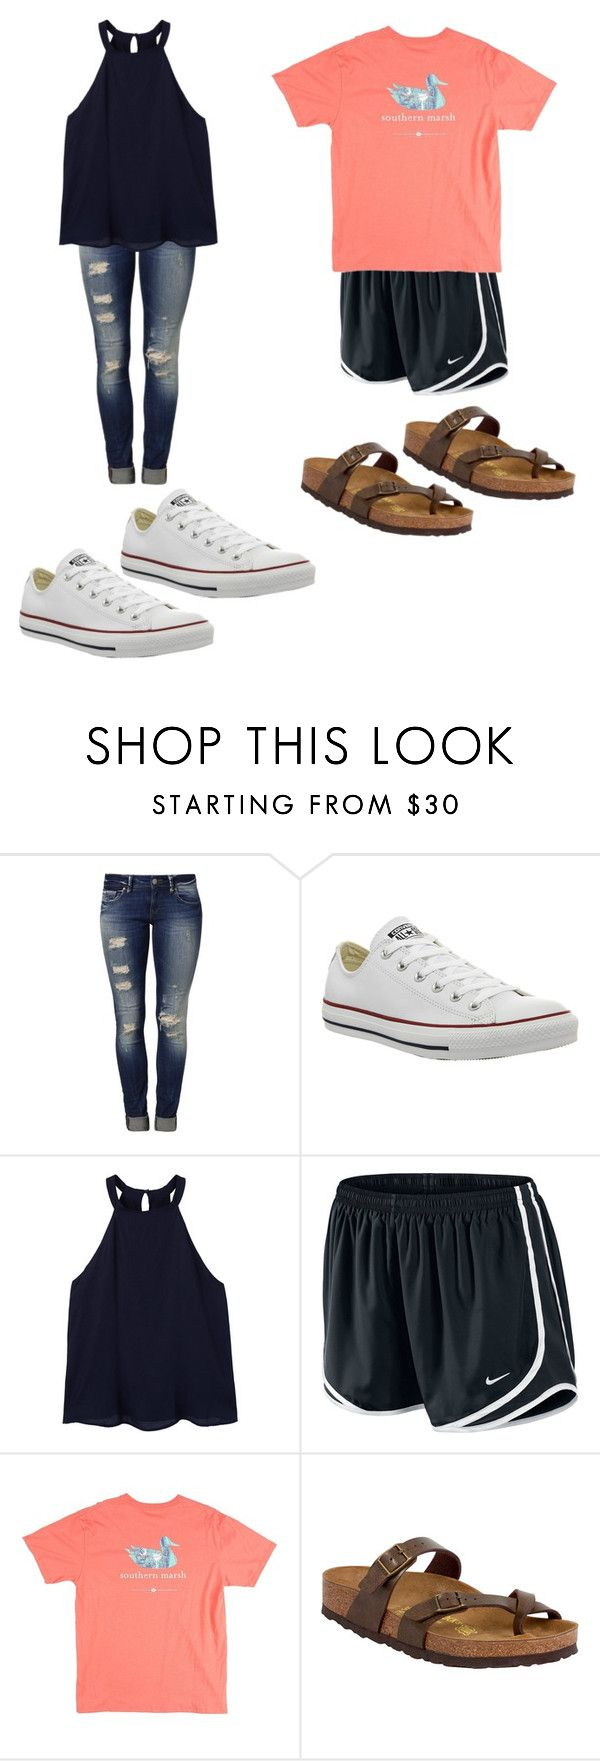 """""""Every Basic Girl at the Back To School Church Function 😂😂😂"""" by blessing2002 ❤ liked on Polyvore featuring Mavi, Converse, MANGO, NIKE and Birkenstock"""